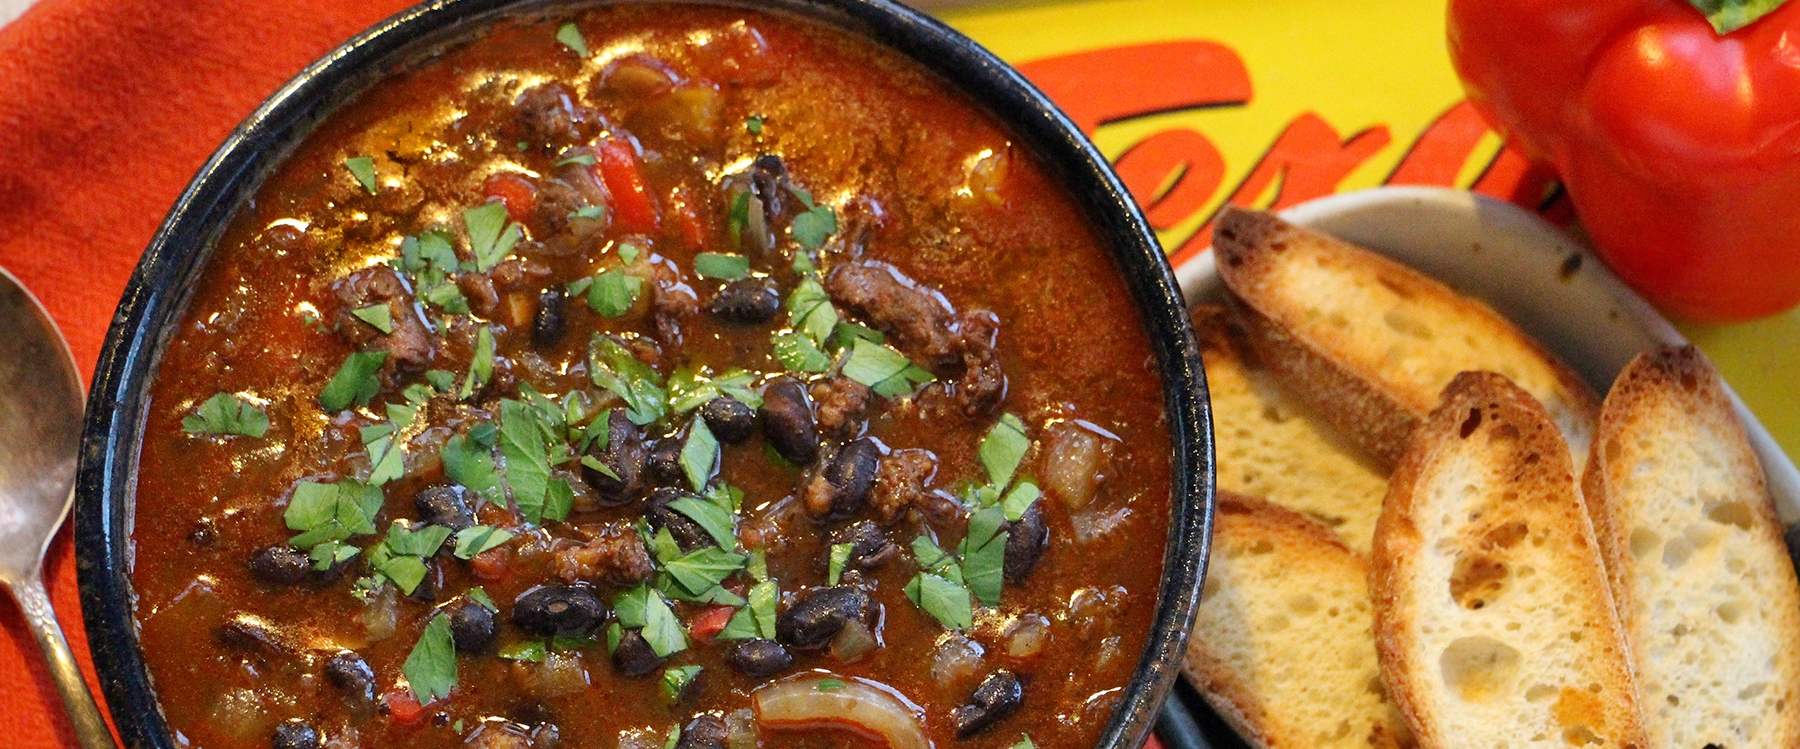 A bowl of black bean chorizo soup seasoned with JK's Seasoning with toasted bread.